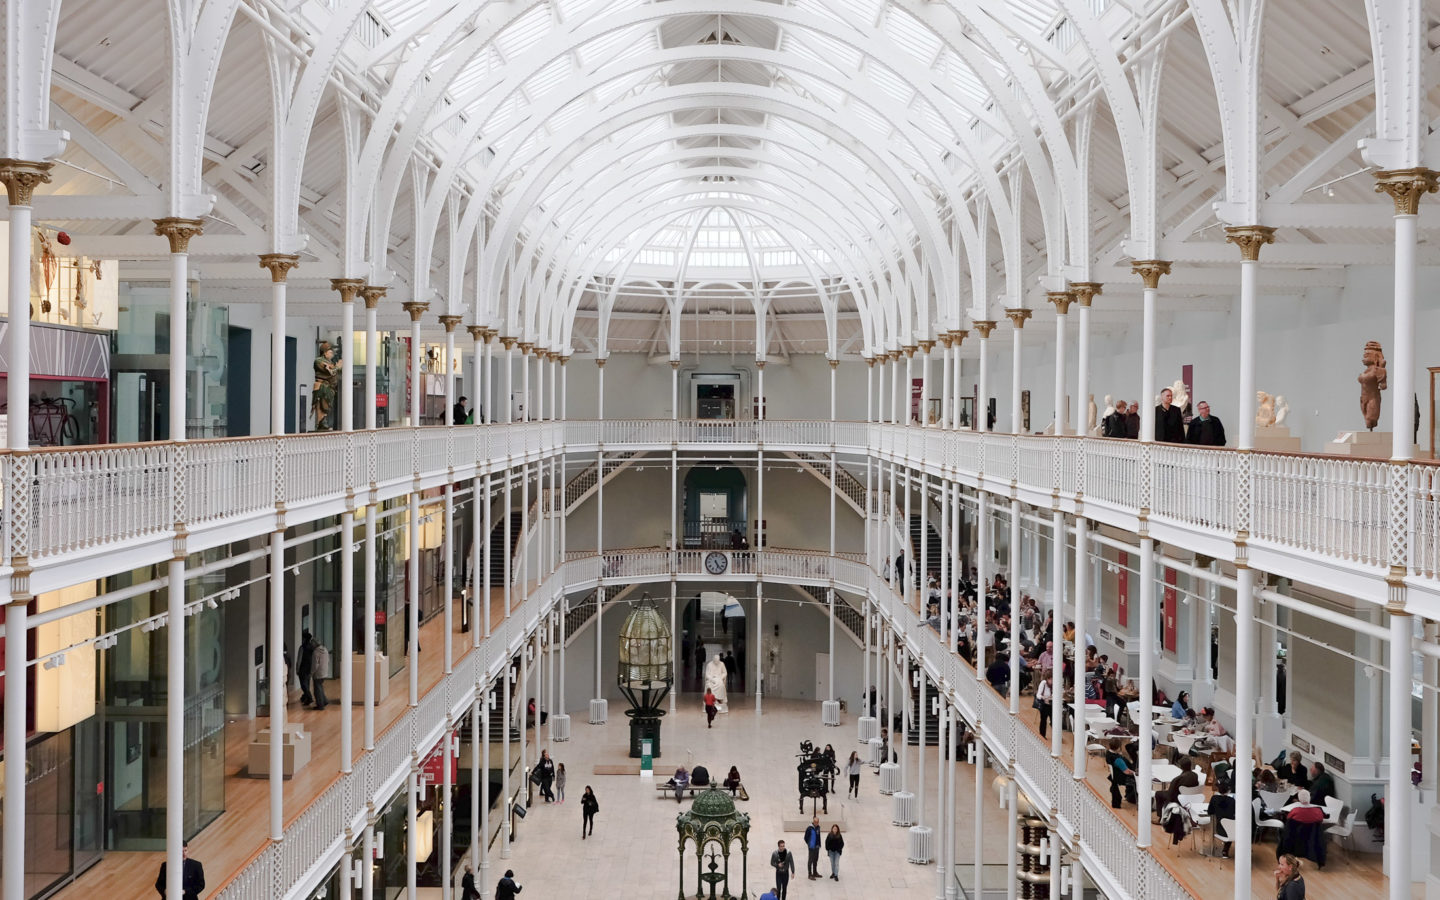 Interior of the National Museum of Scotland